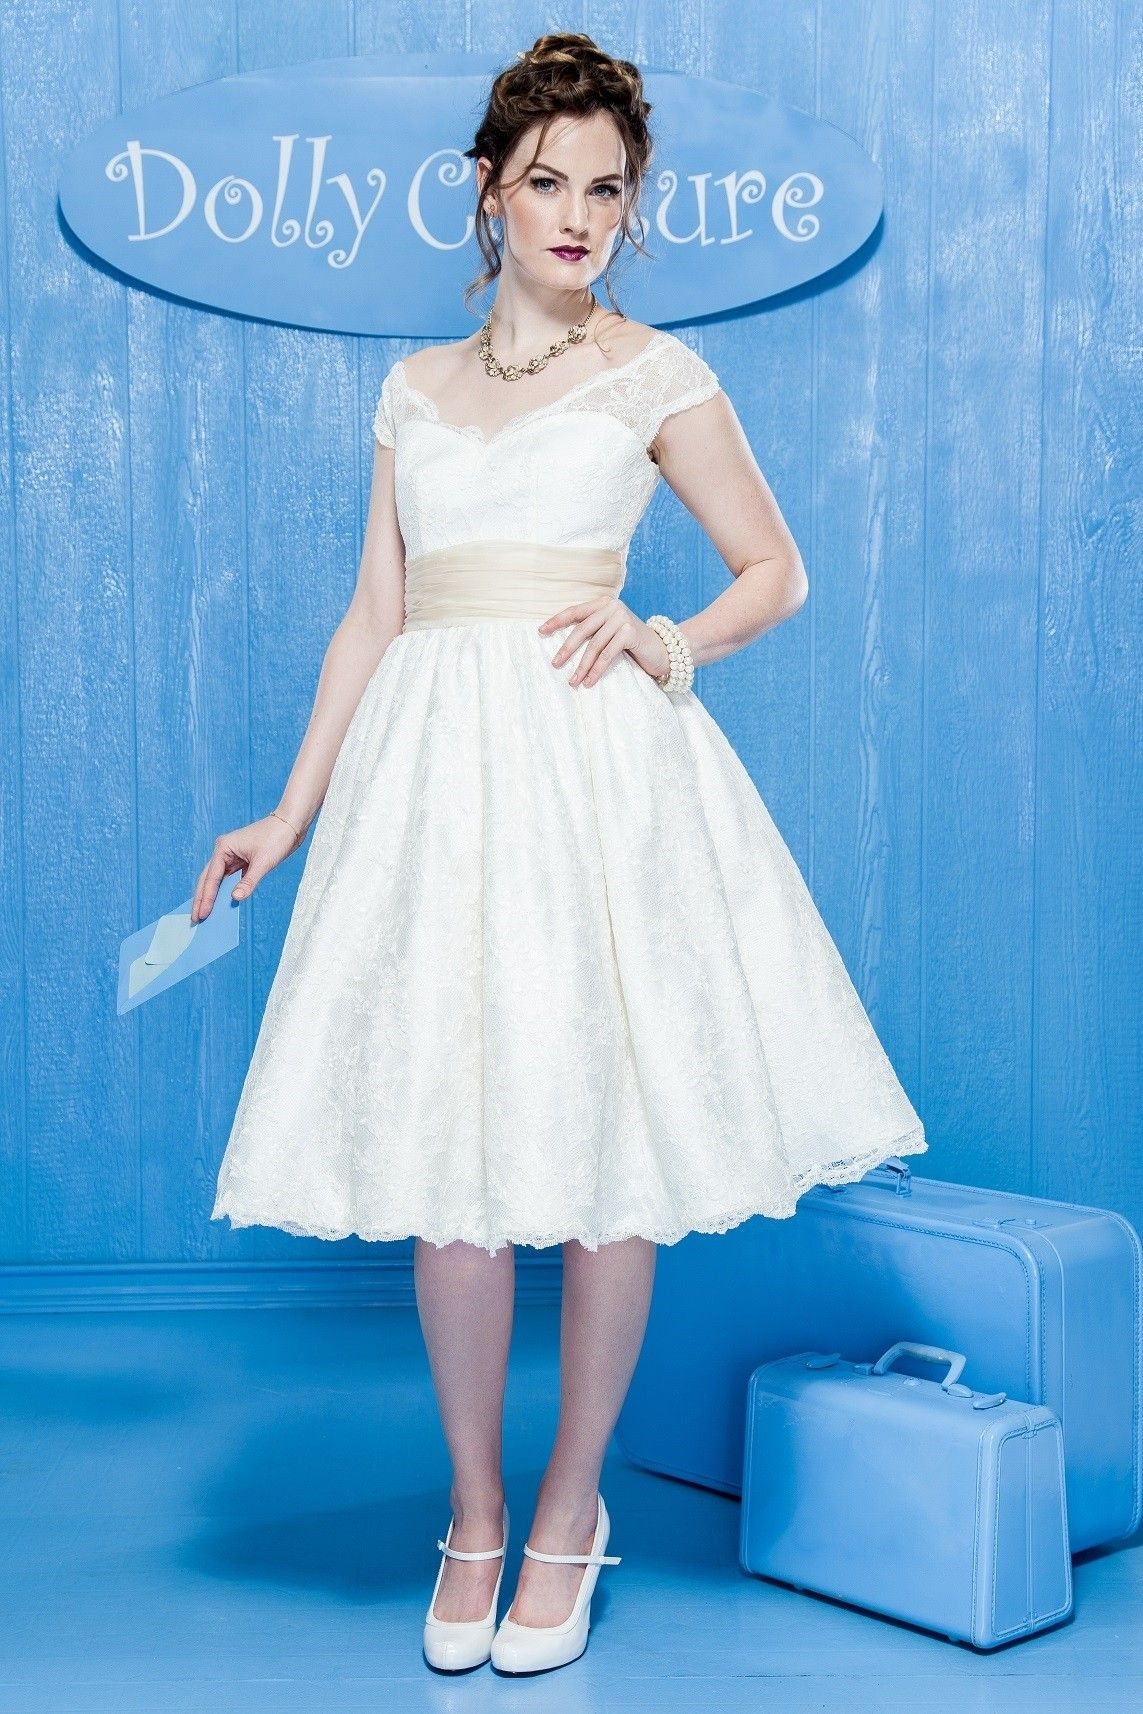 Avilia Bay with Lace Skirt - Dolly Couture in LA Full Circle Skirt ...